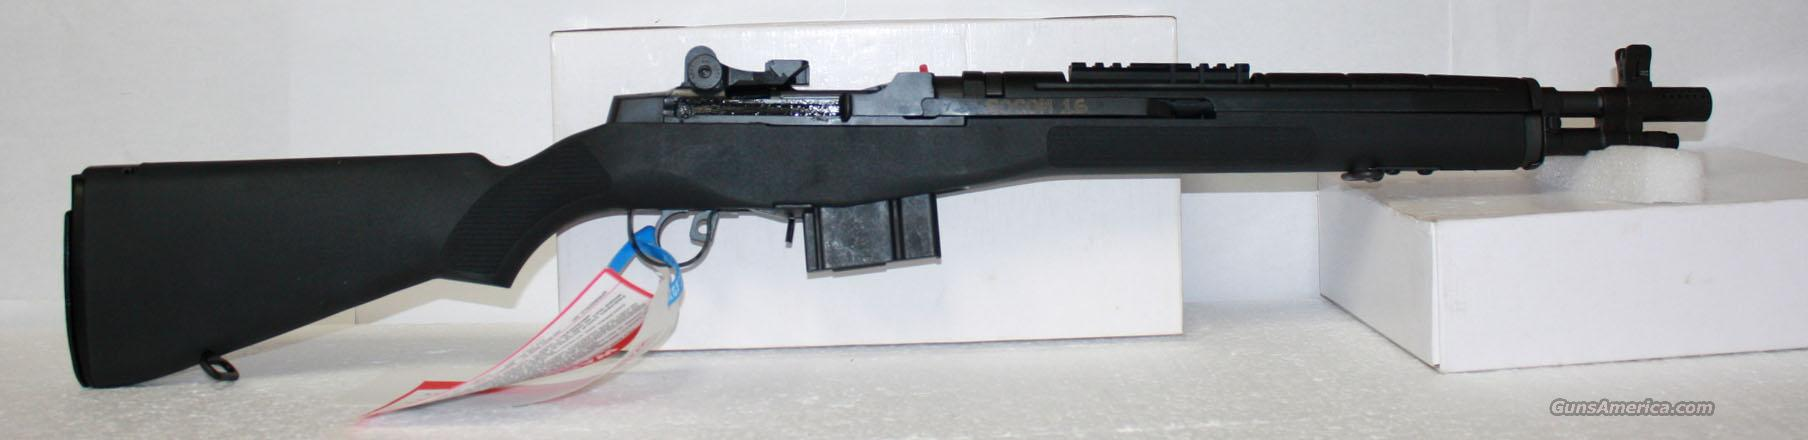 SPRINGFIELD M1A SOCOM 16 CA. LEGAL NEW IN BOX  Guns > Rifles > Springfield Armory Rifles > M1A/M14